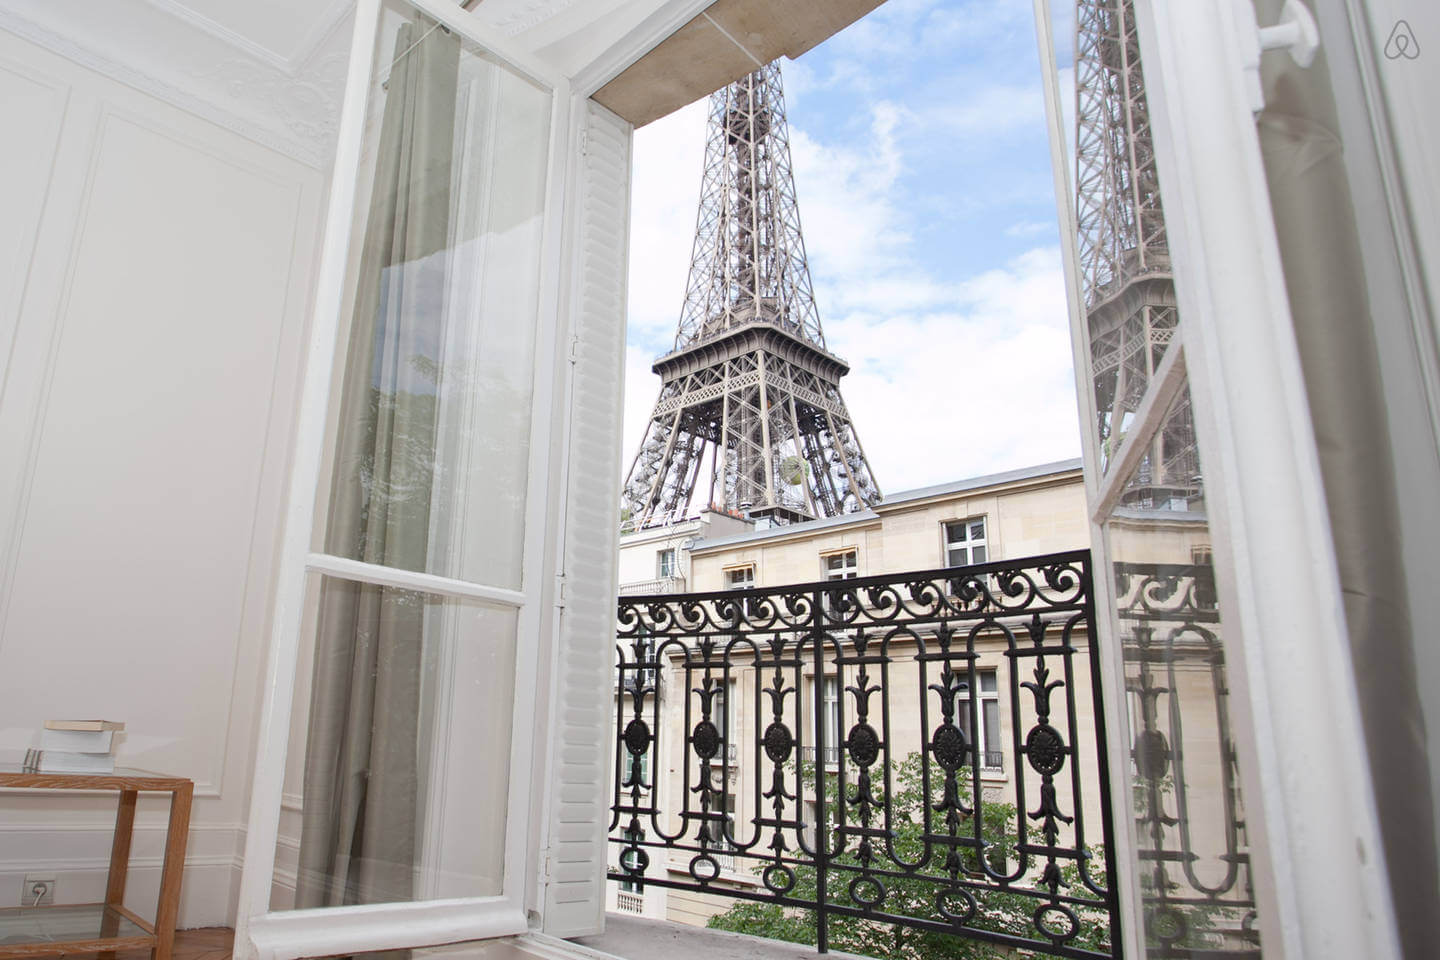 Top 5 places to stay in paris tips to explore the city for Places to stay in paris near eiffel tower